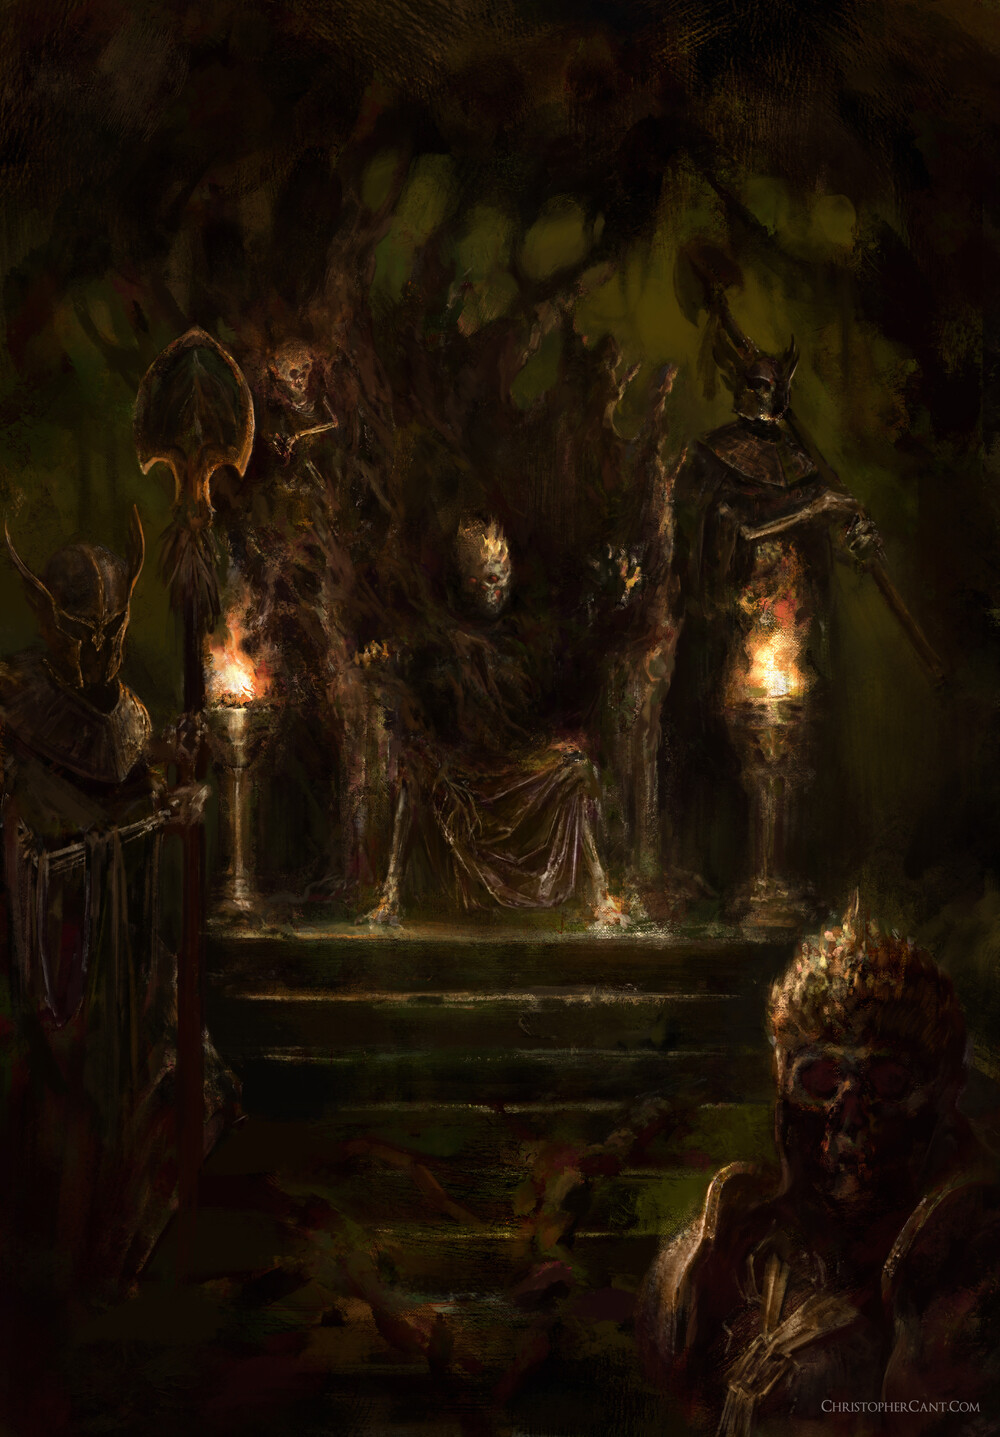 The Underking